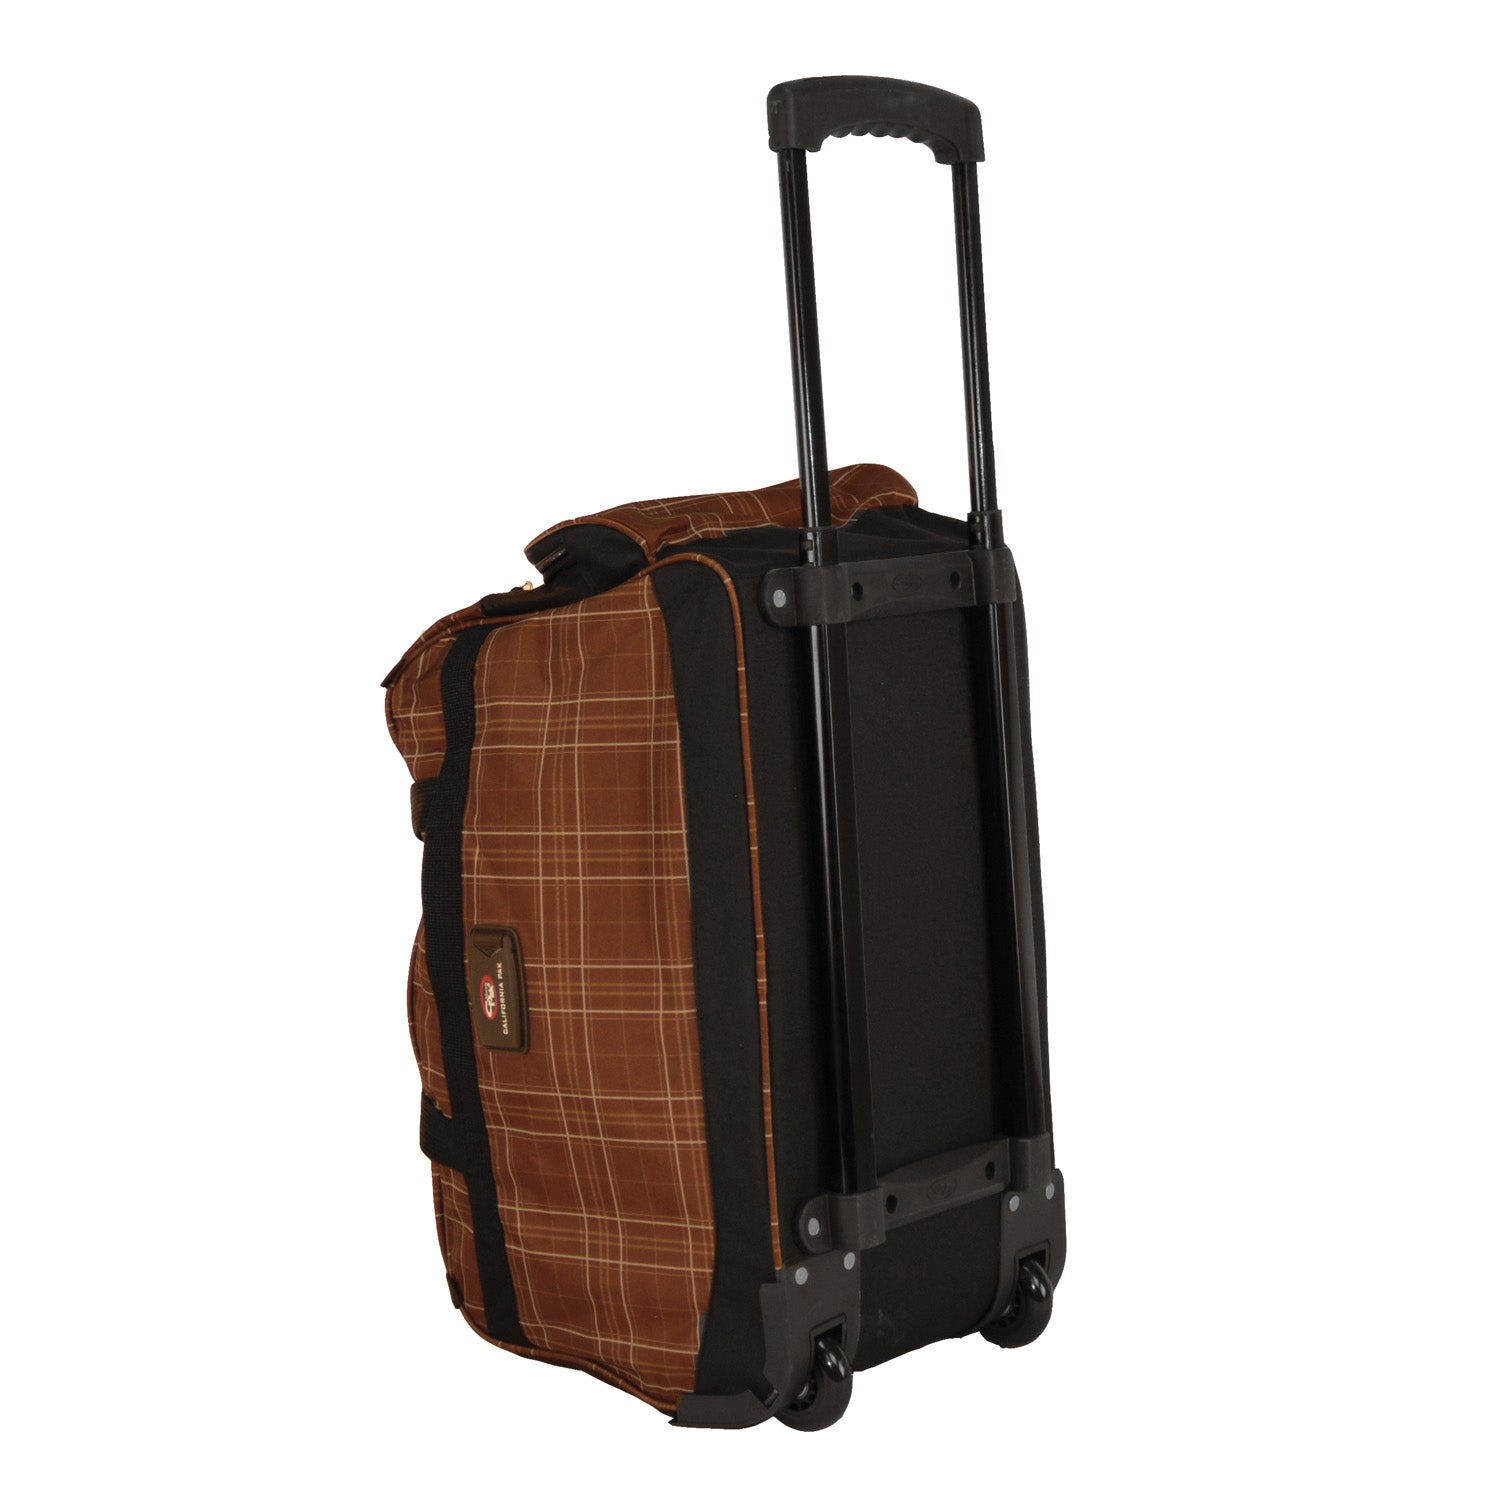 c047a85485 Shop CalPak Champ Plaid 21 Inch Carry On Rolling Upright Duffel Bag - Free  Shipping On Orders Over  45 - Overstock - 4094825